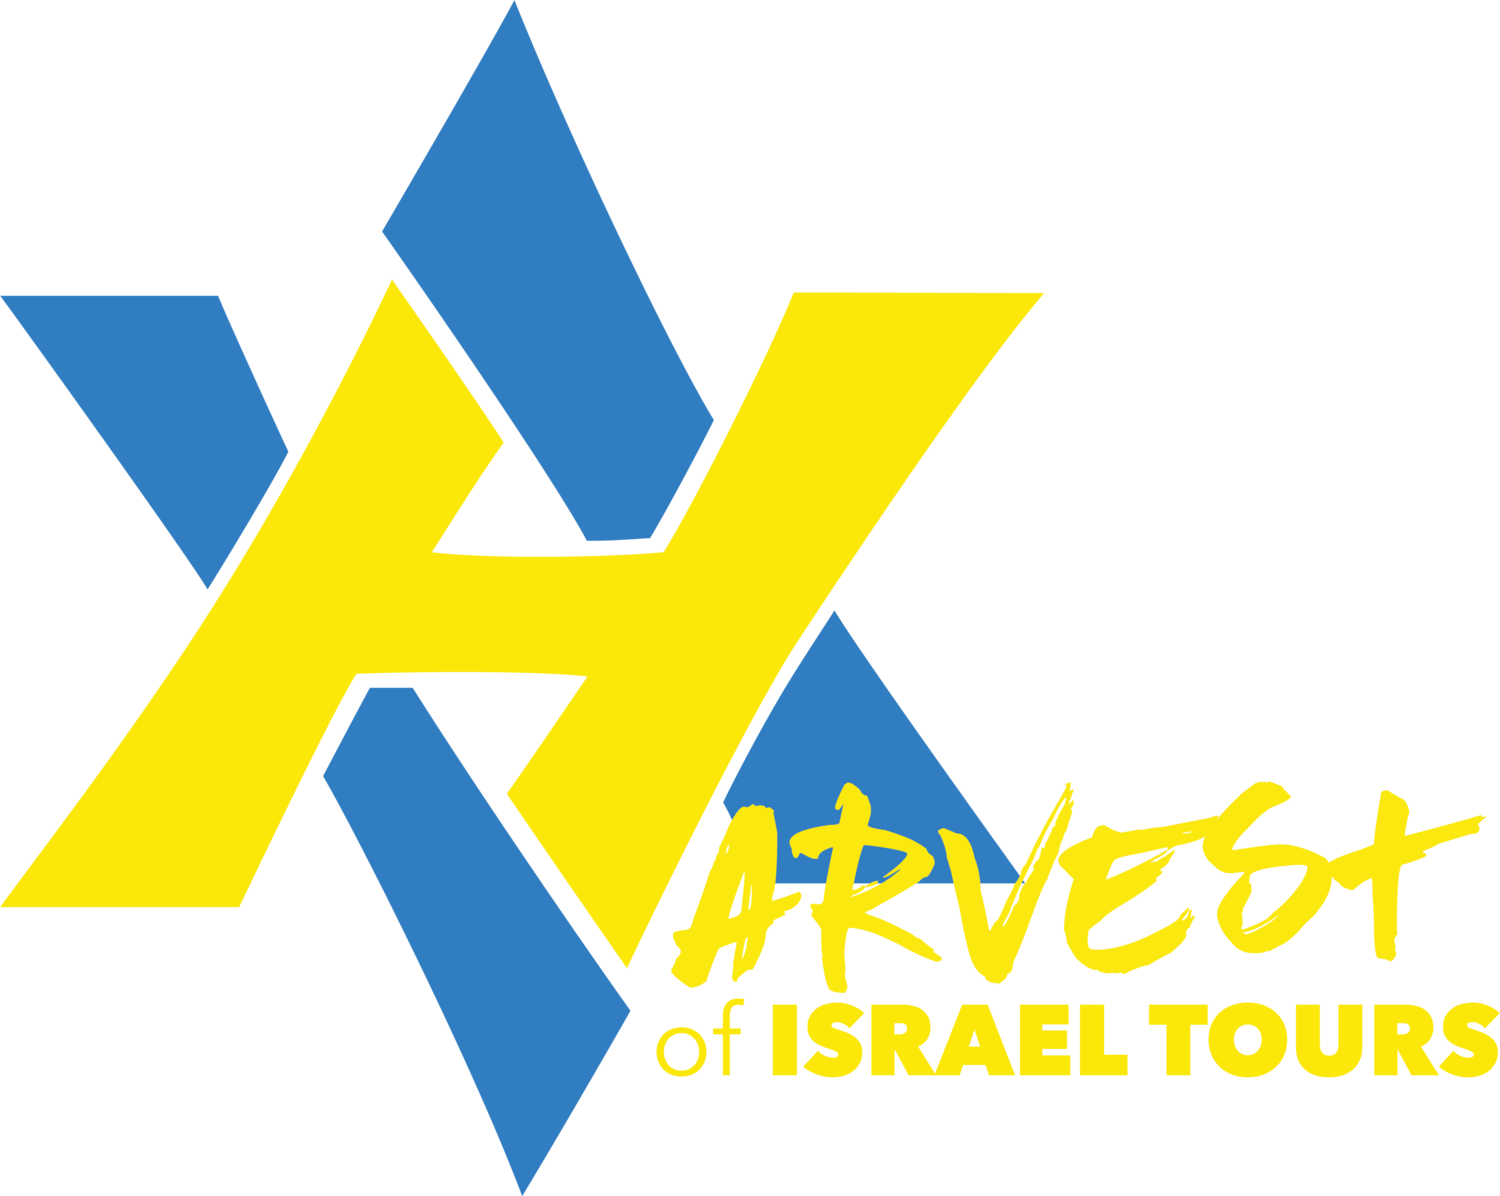 Harvest of Israel Tours